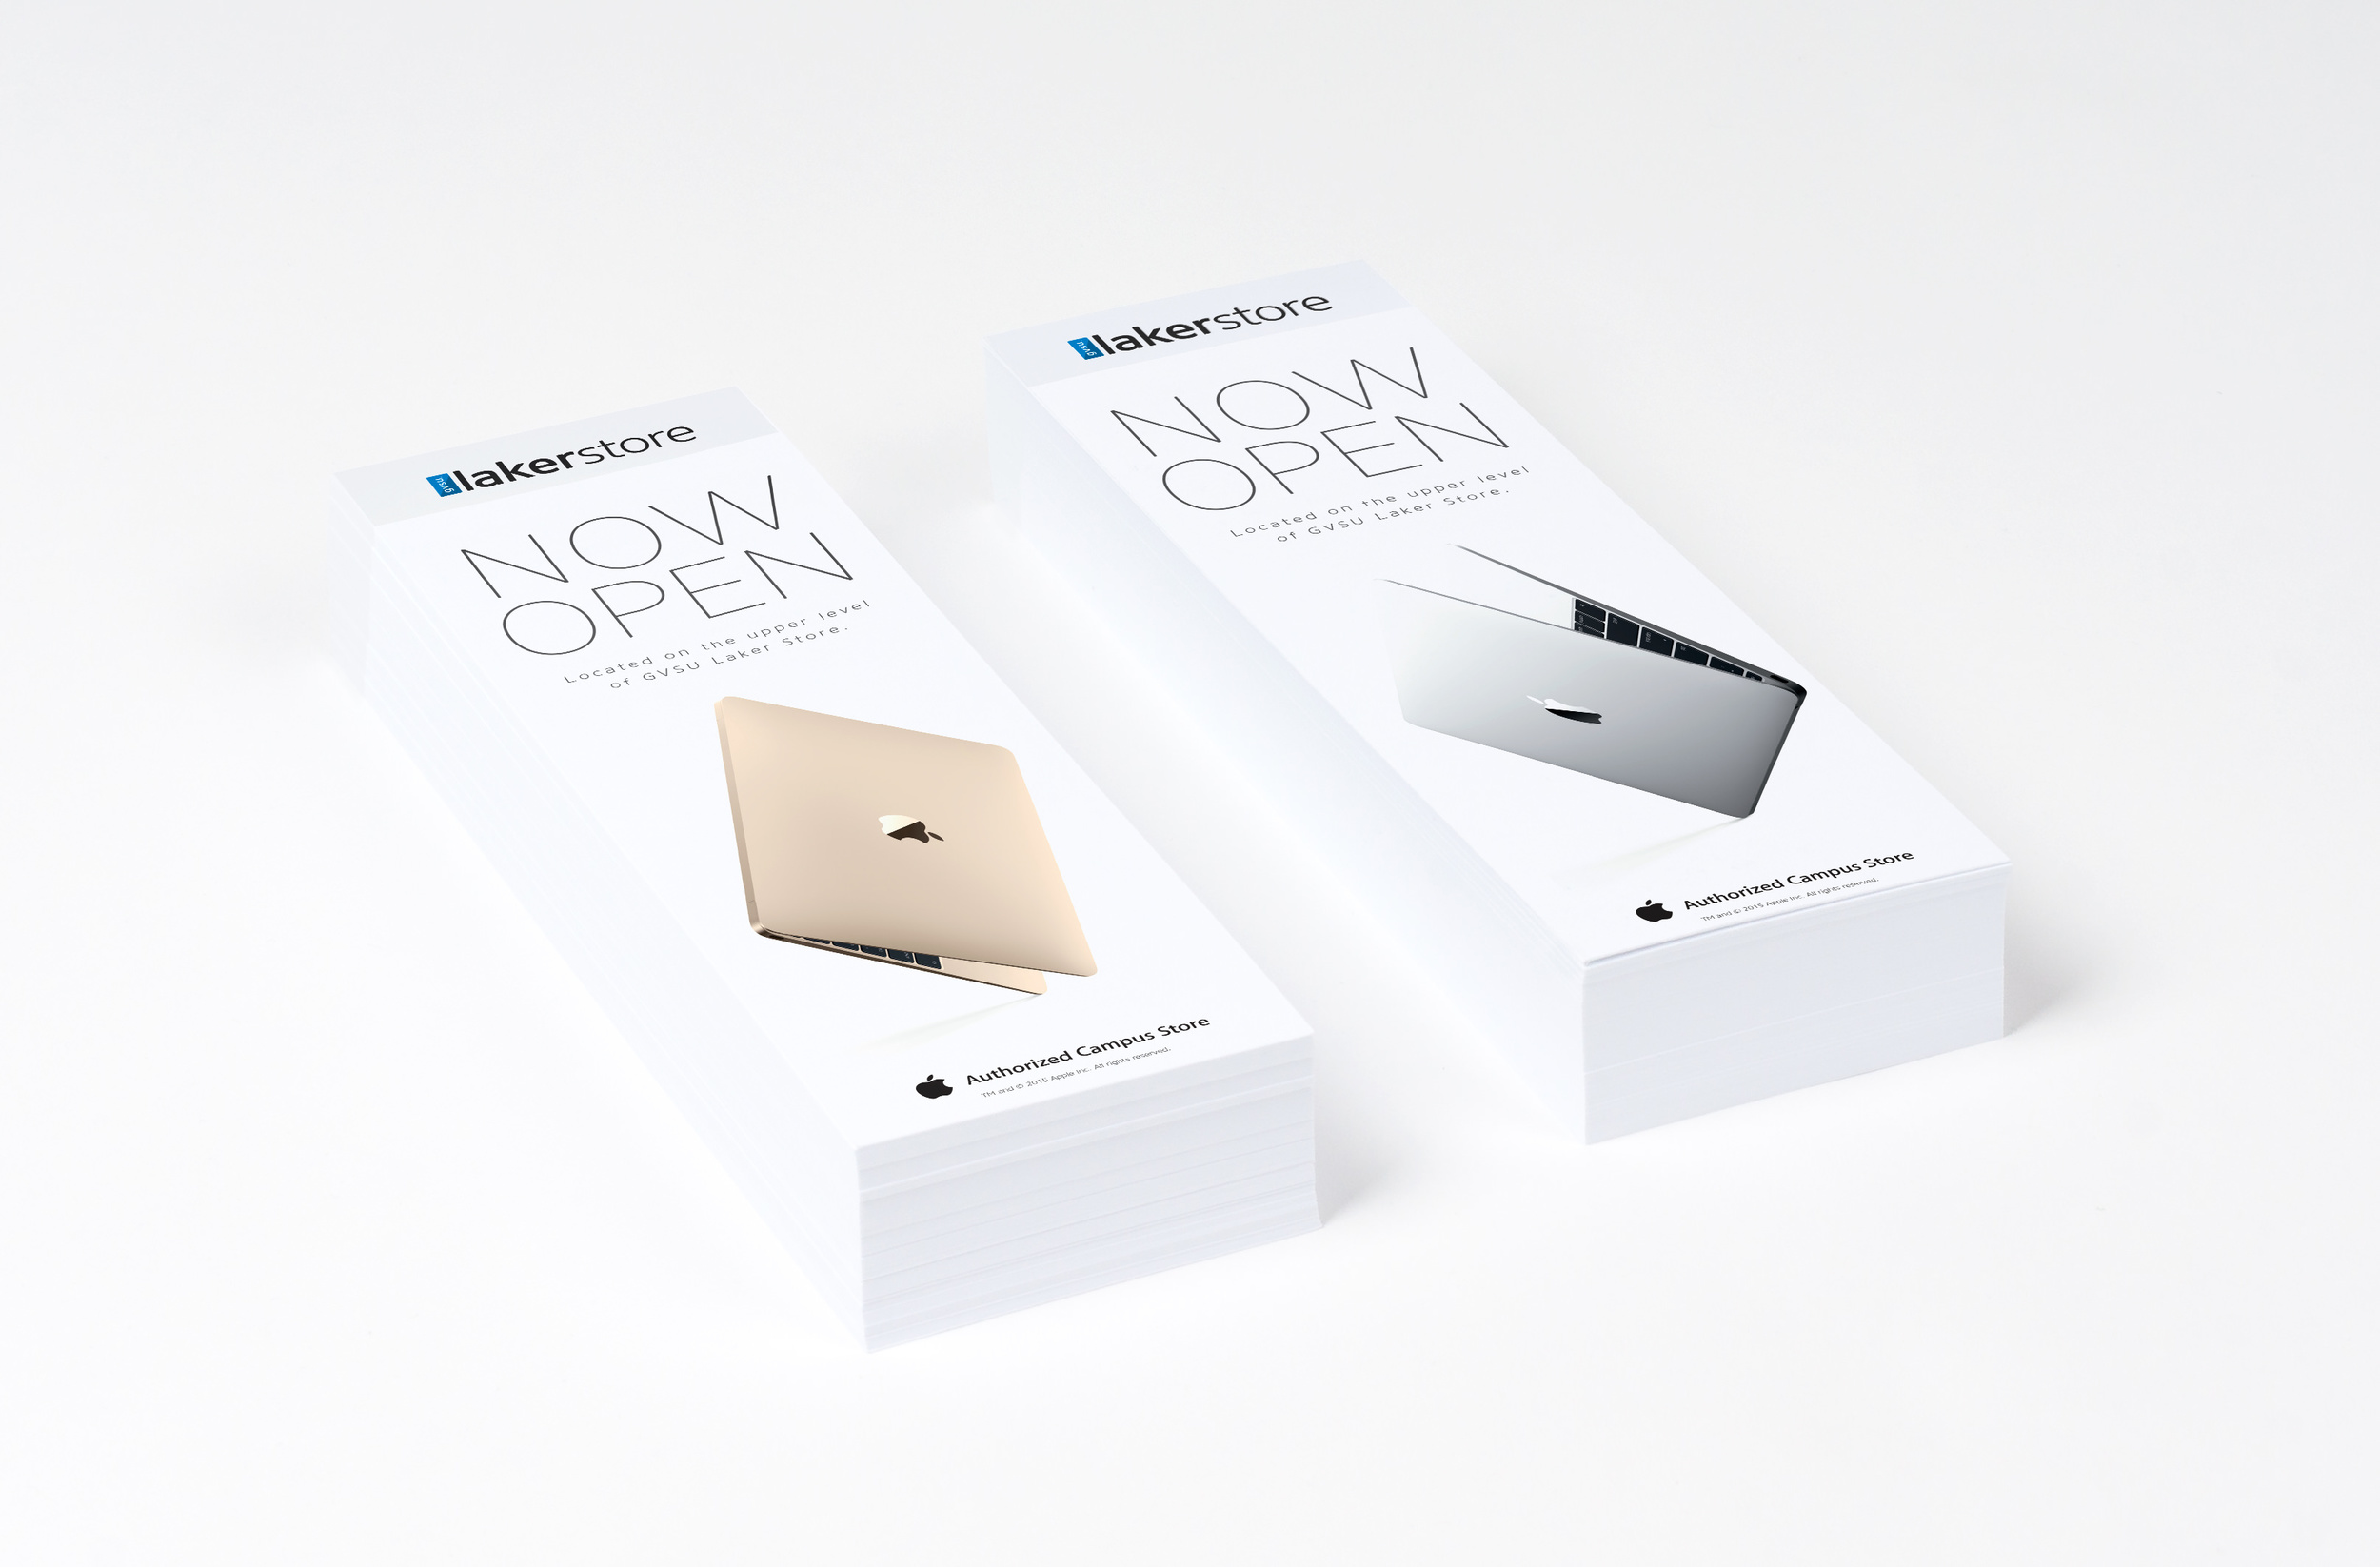 Apple Store Now Open Flyers